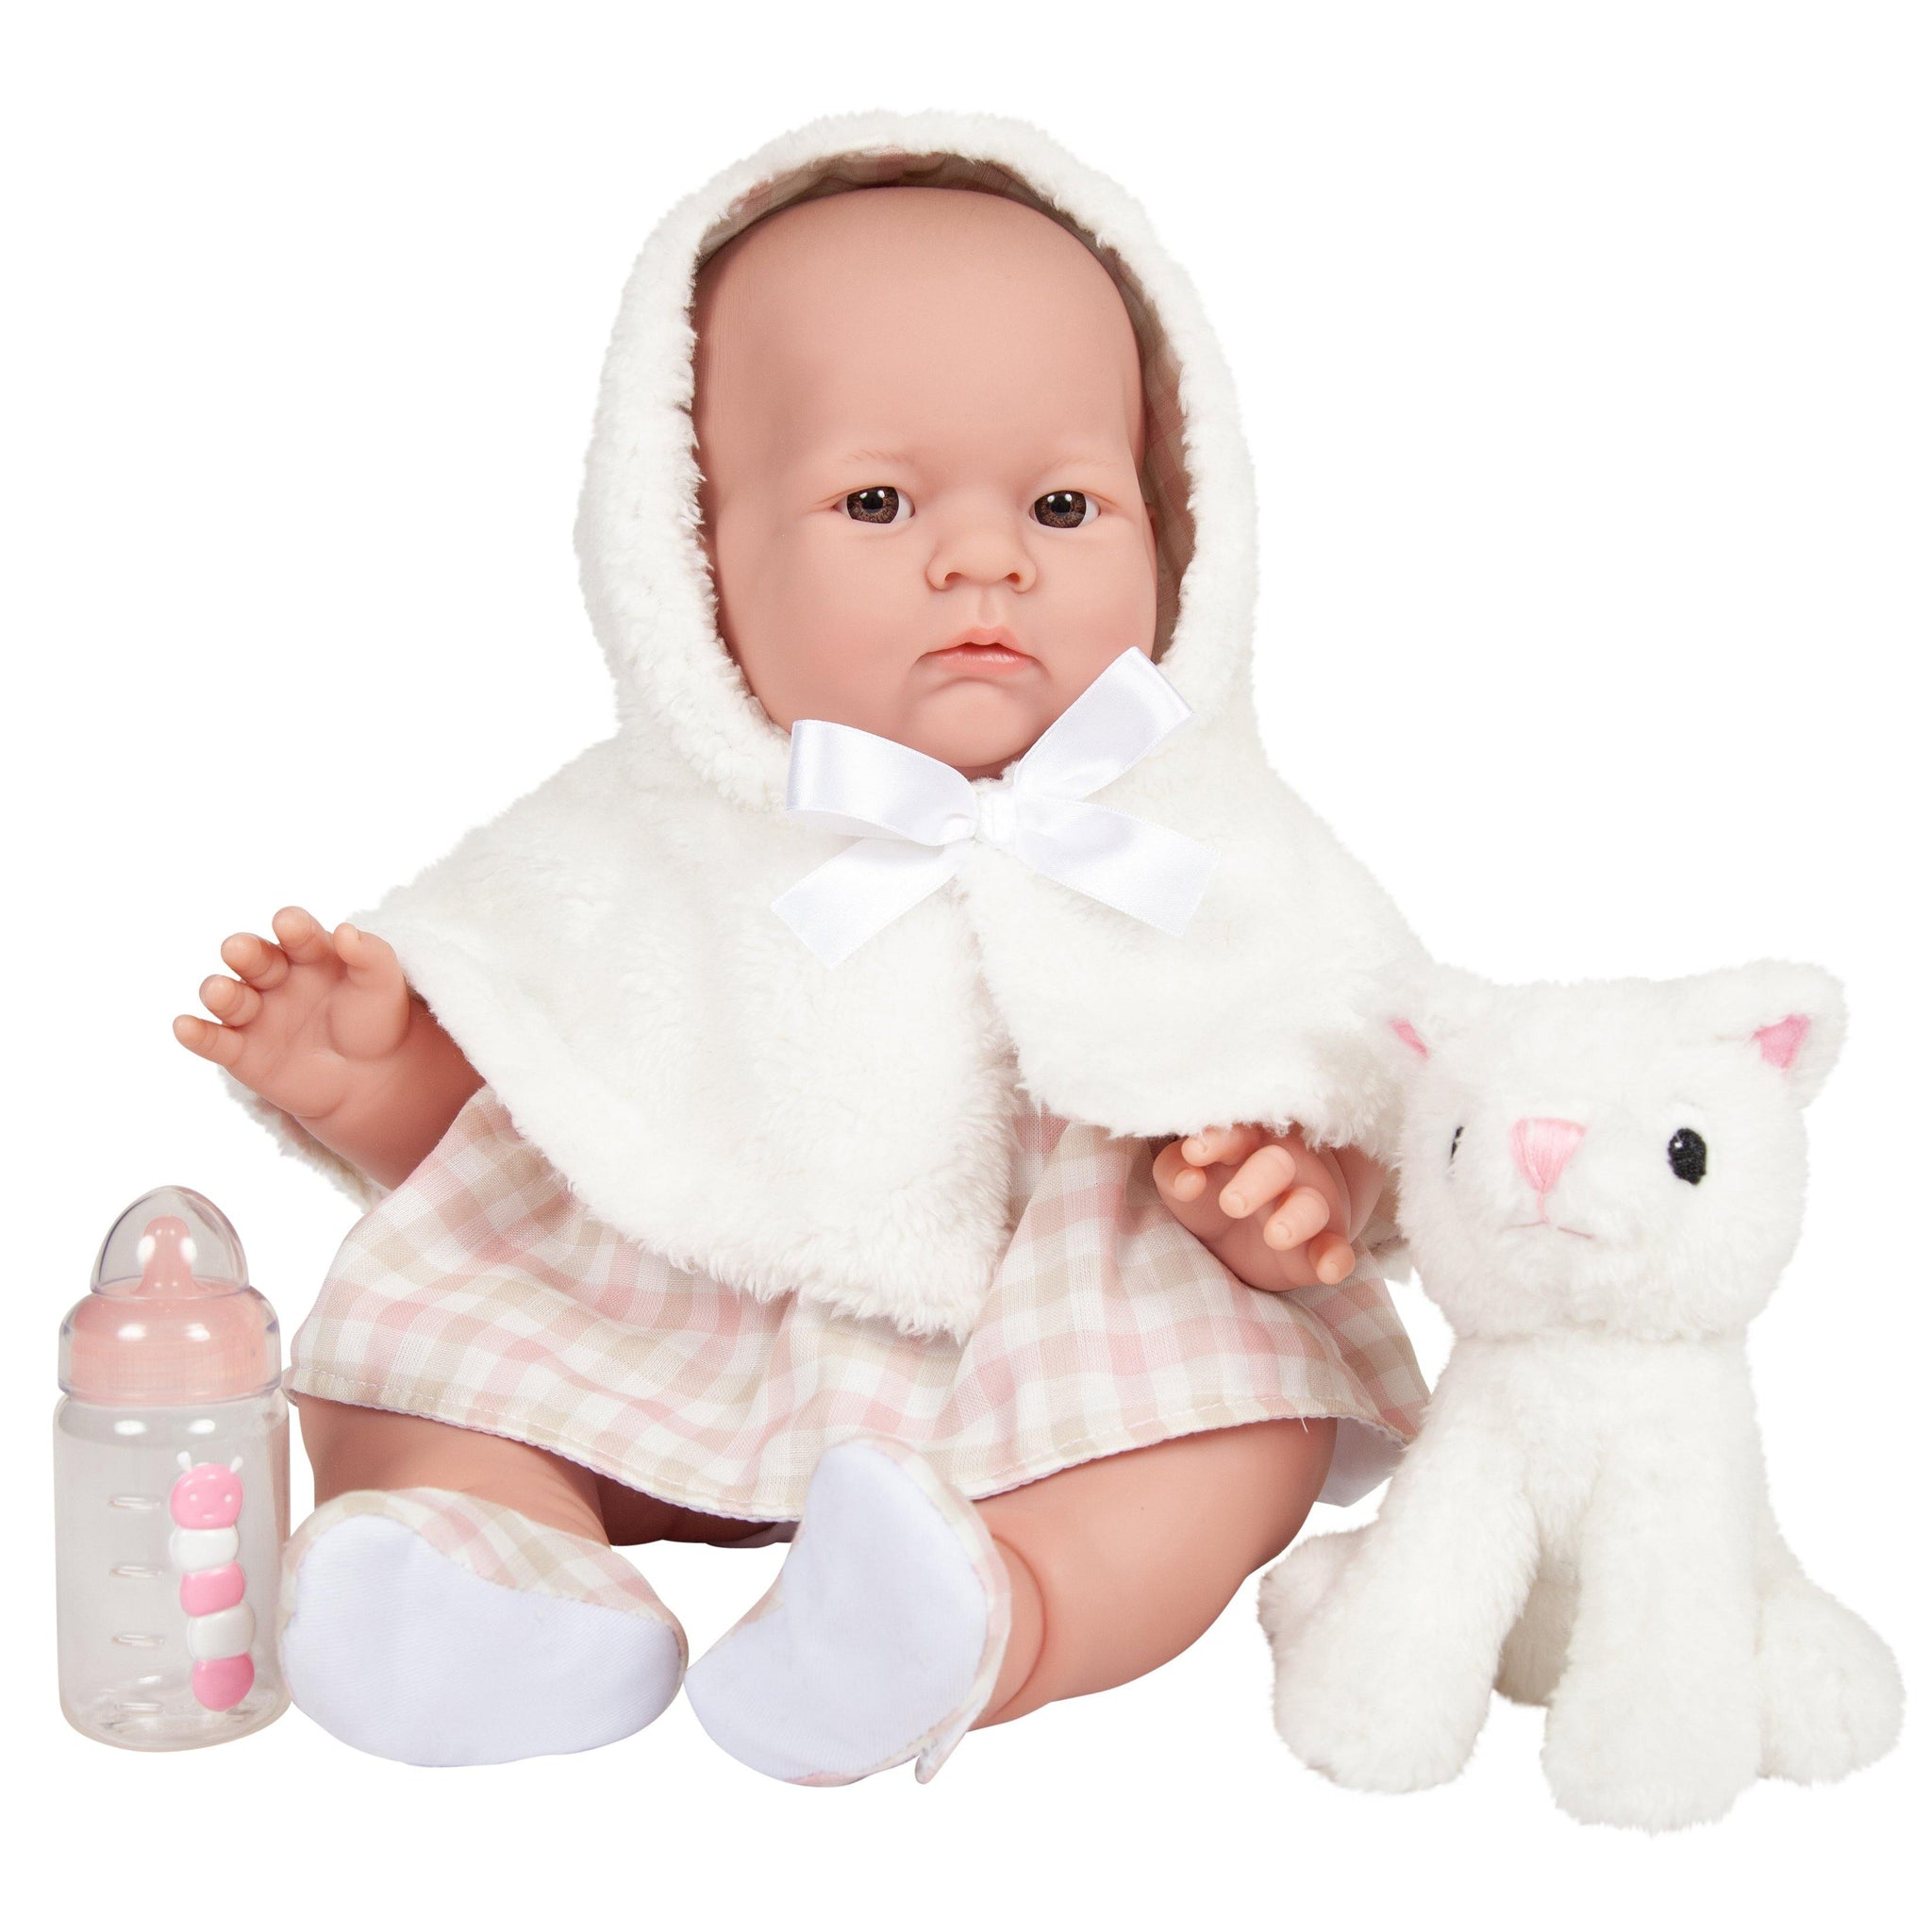 JC Toys, Lily Baby Doll 18in All-Vinyl Real Girl White Coat Set and Accessories